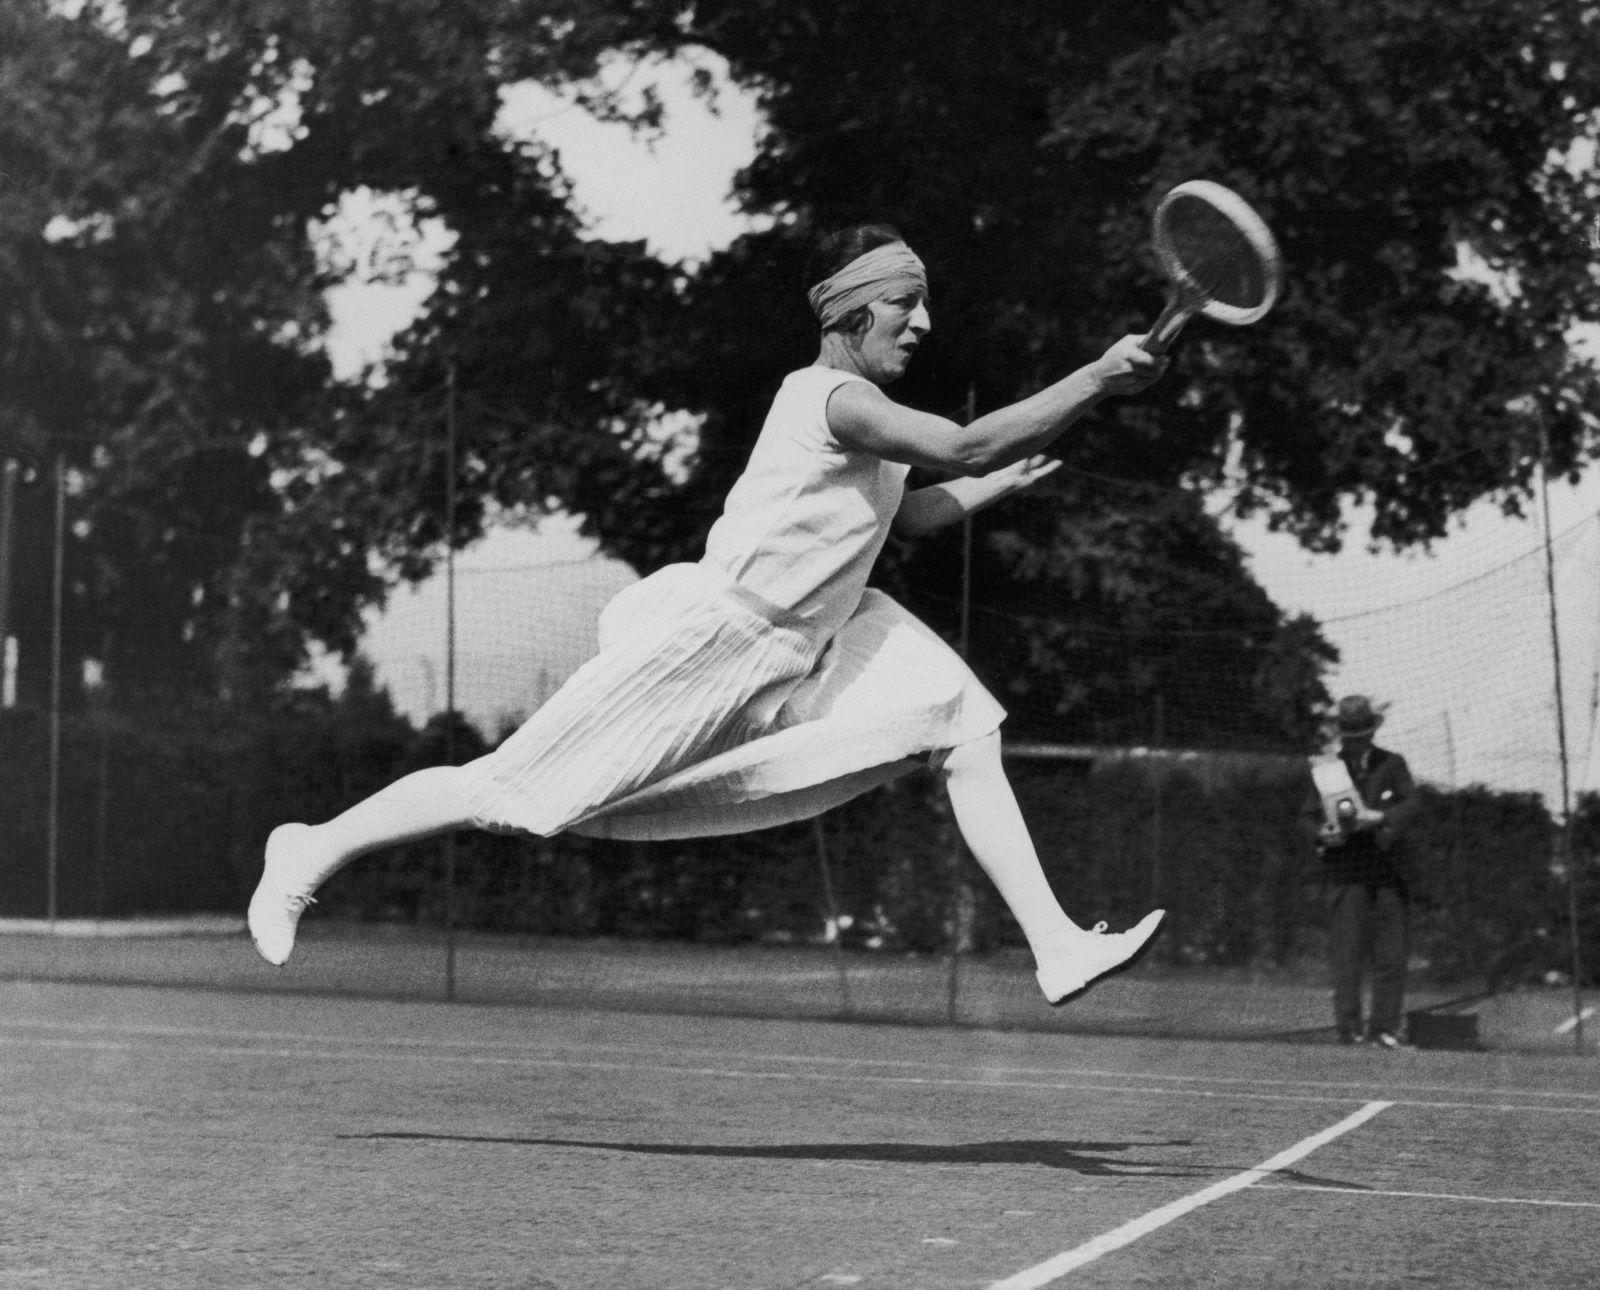 French tennis player Suzanne Lenglen petes at Wimbledon in 1926